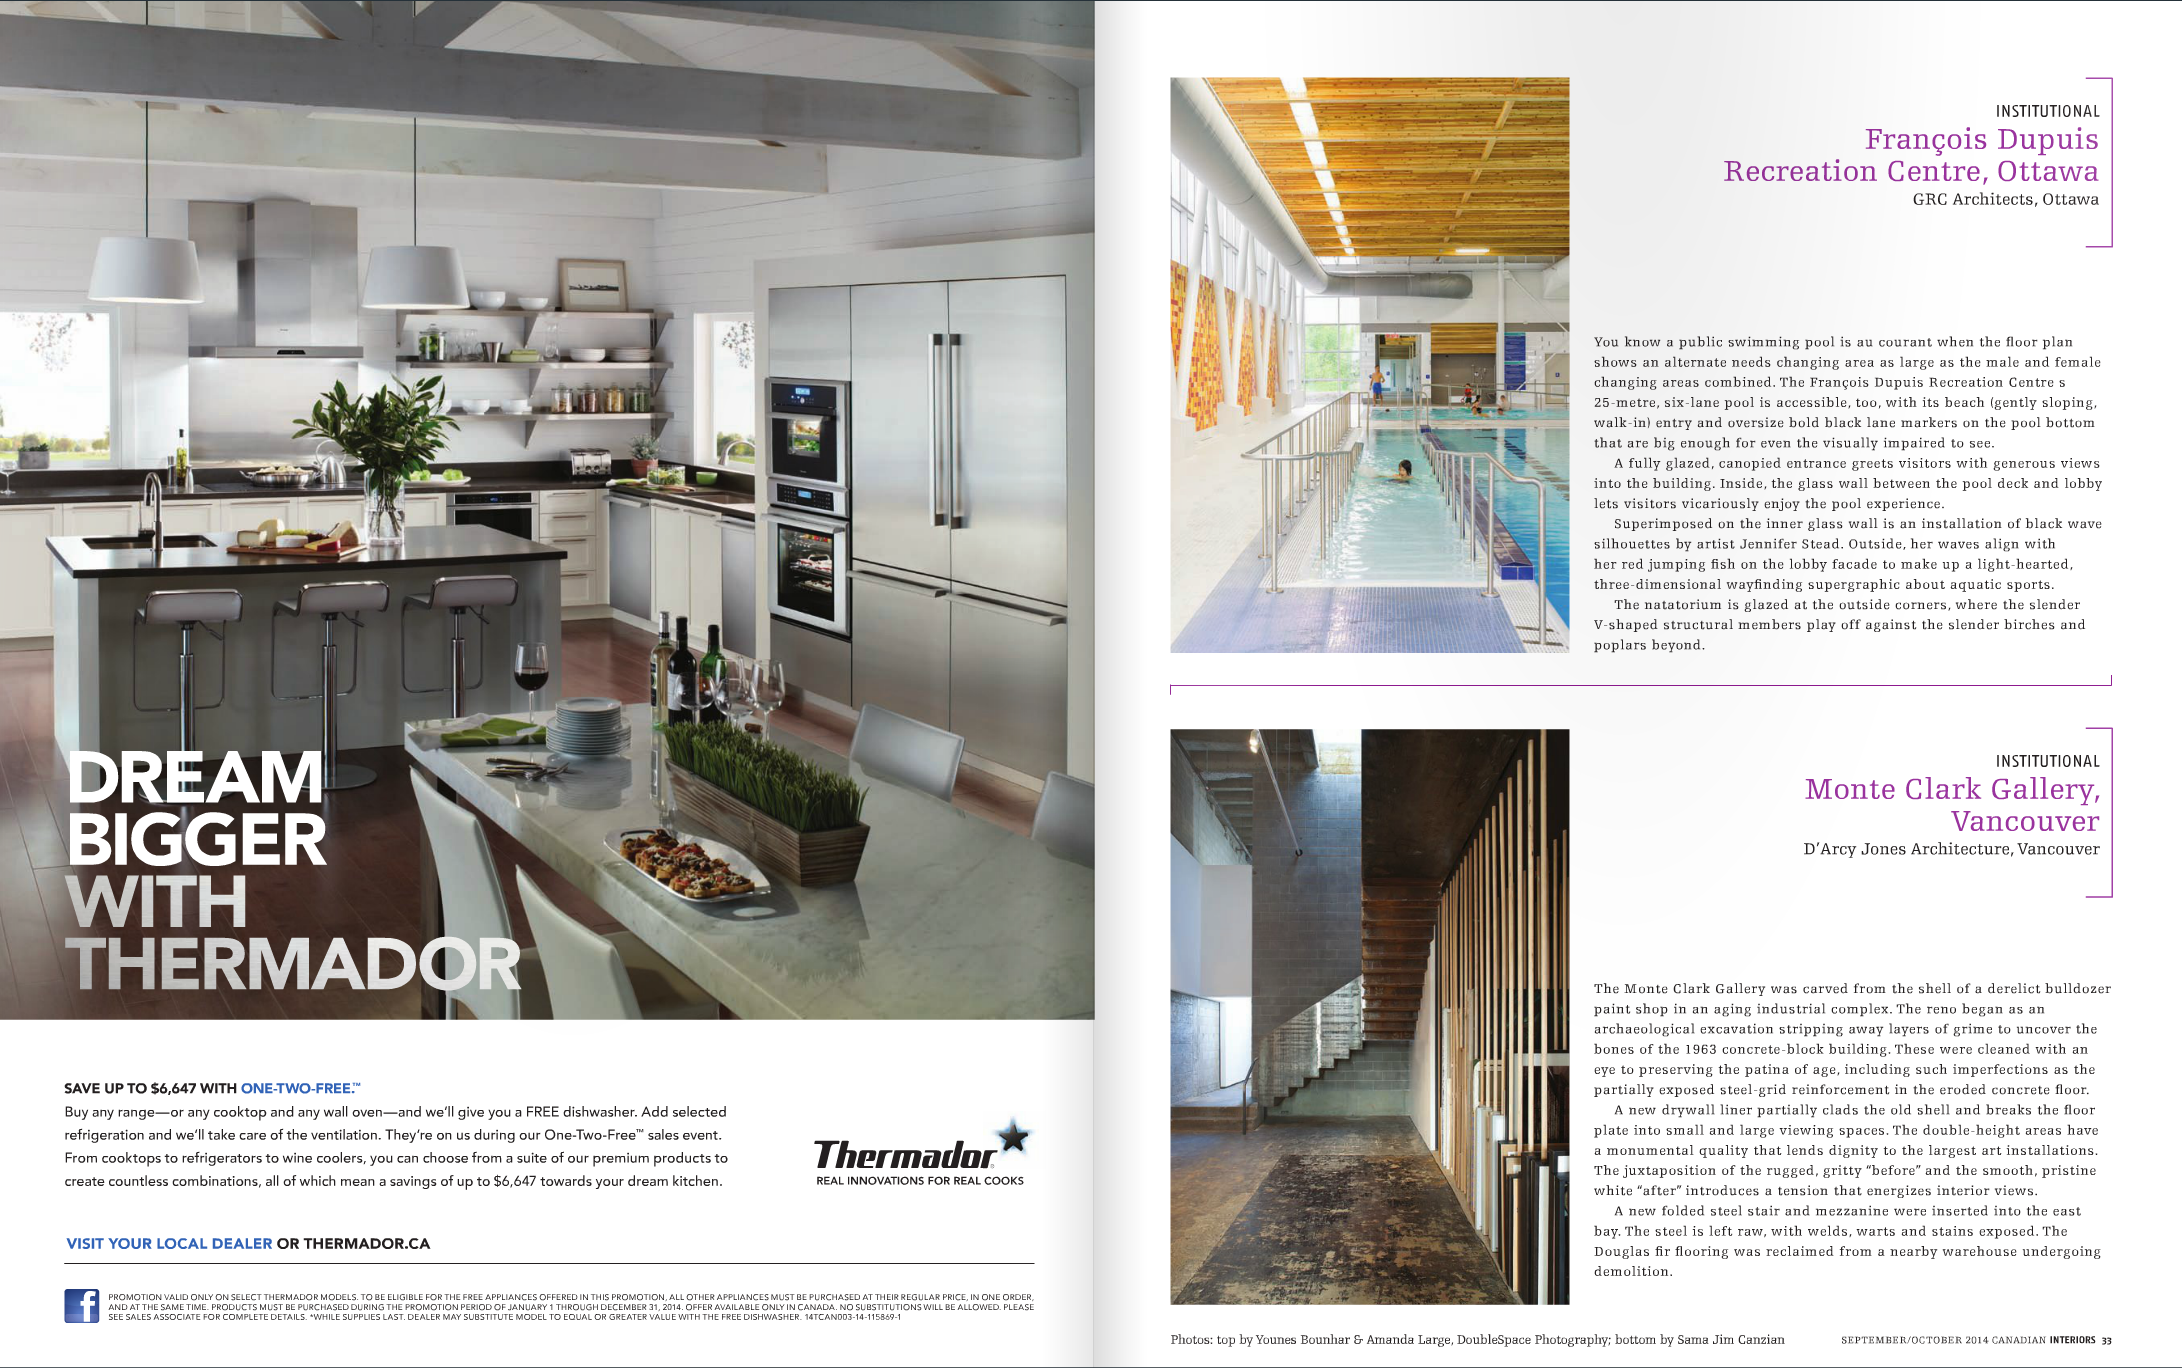 Canadian Interior Best of Canada inside Oct 2014